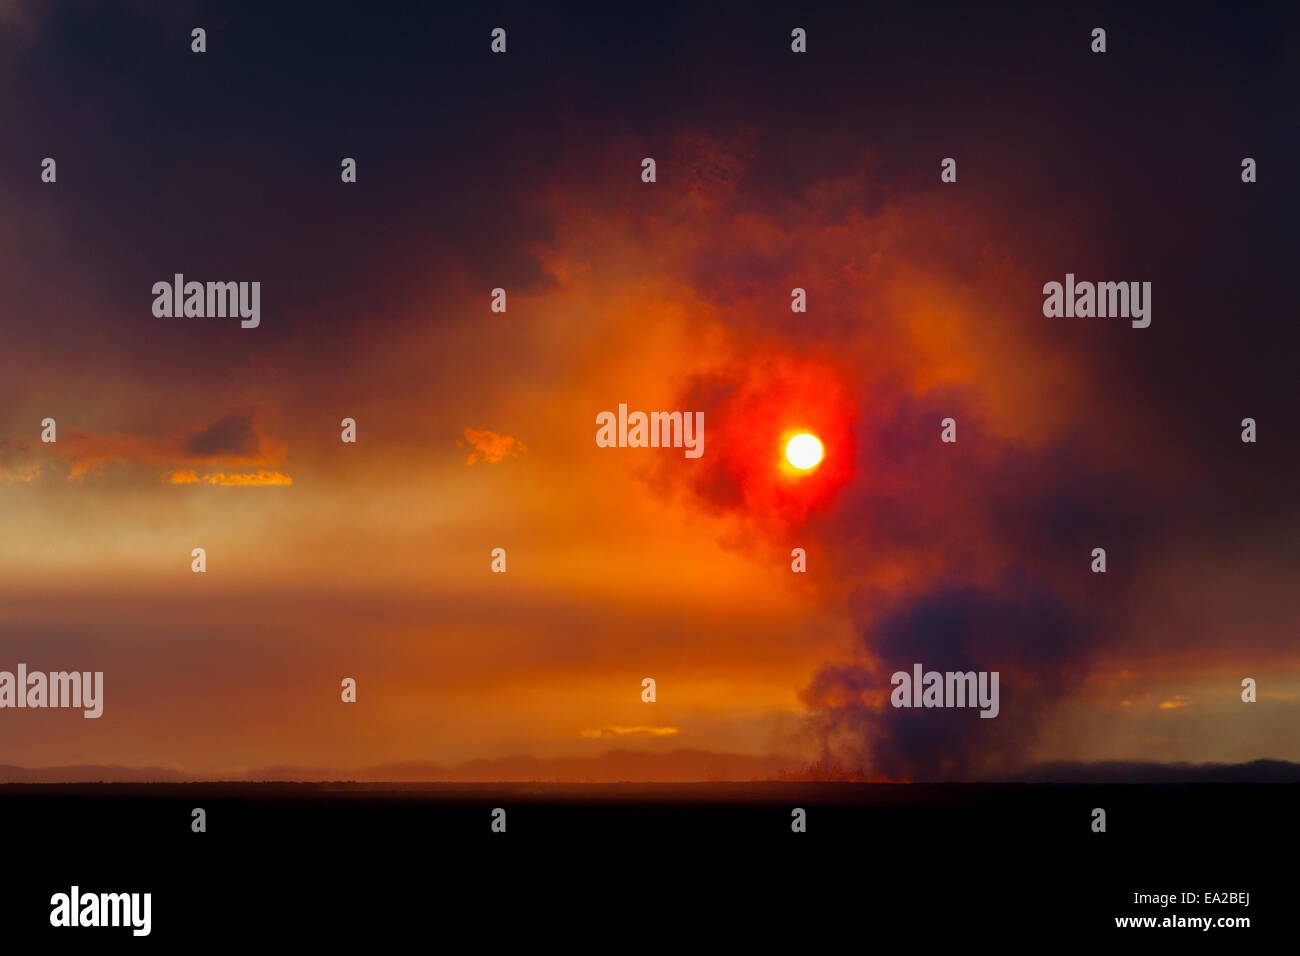 dawn over the volcano eruption, Iceland 2 - Stock Image